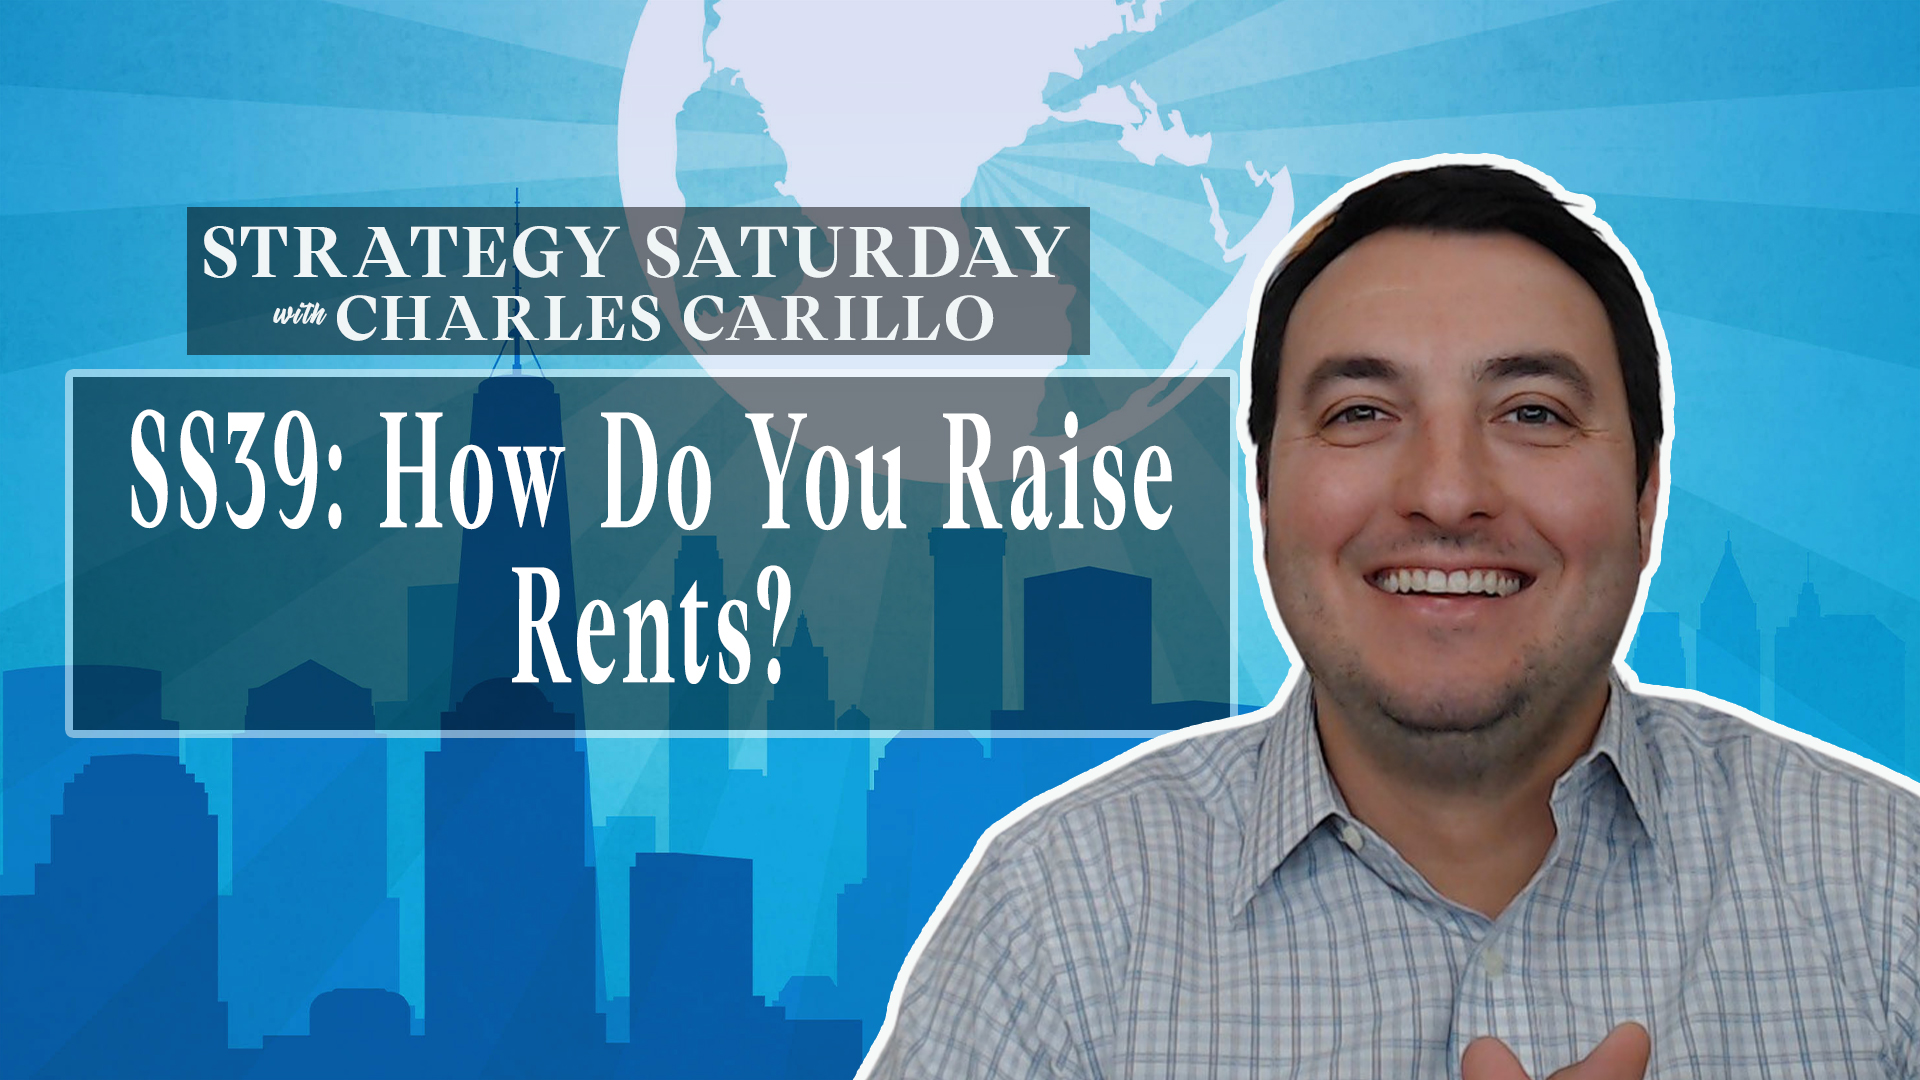 SS39: How Do You Raise Rents?